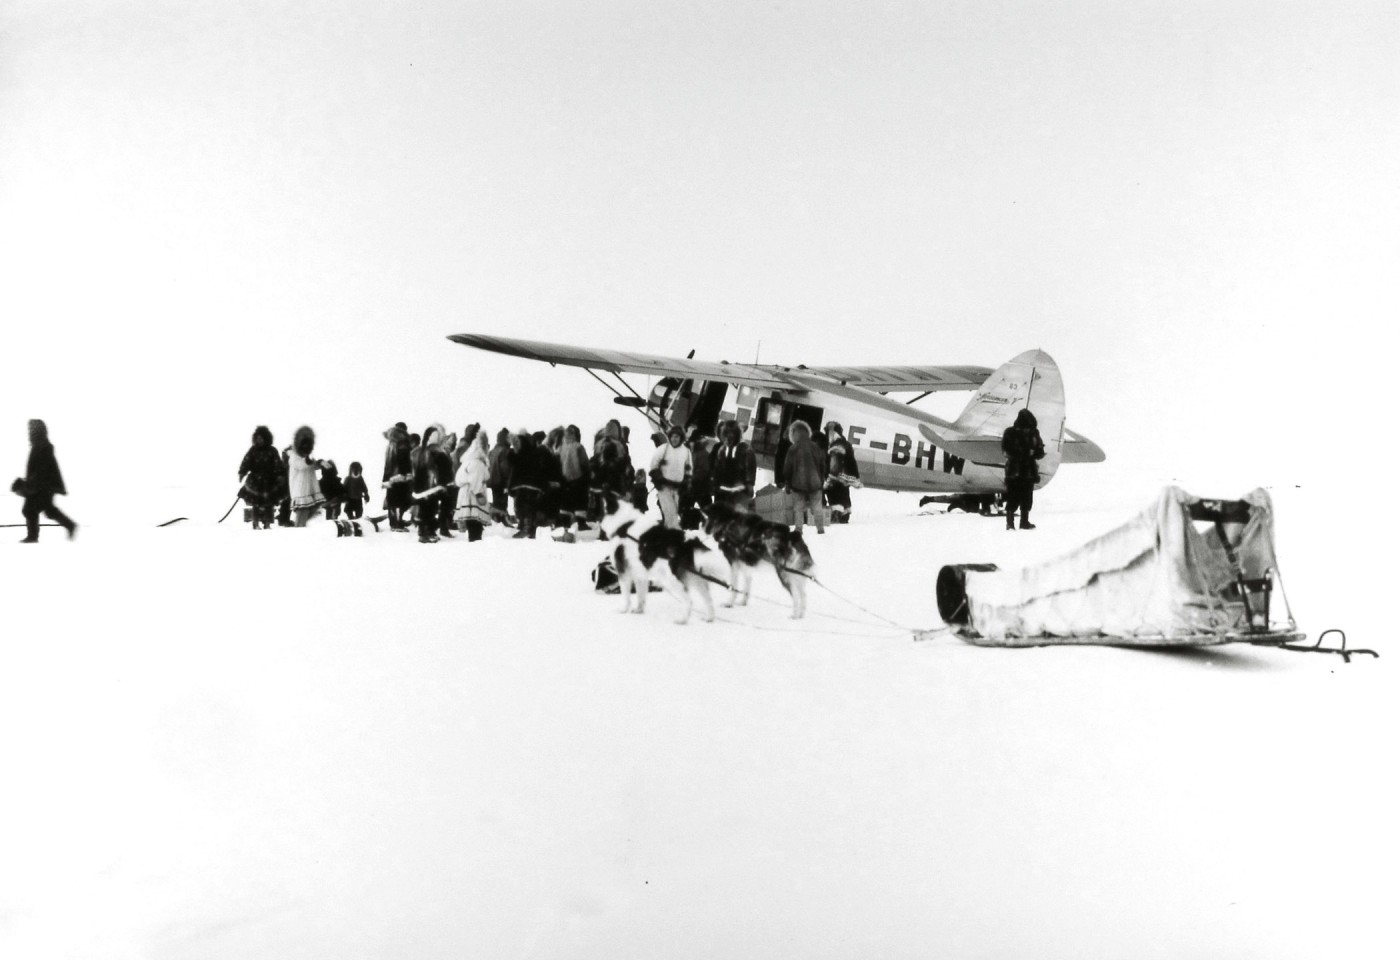 Richard Harrington, </span><span><em>A &quot;Norseman&quot; plane arrives in dim arctic light, Coppermine, NWT</em>, </span><span>1949 © Estate of Richard Harrington / Courtesy of Stephen Bulger Gallery